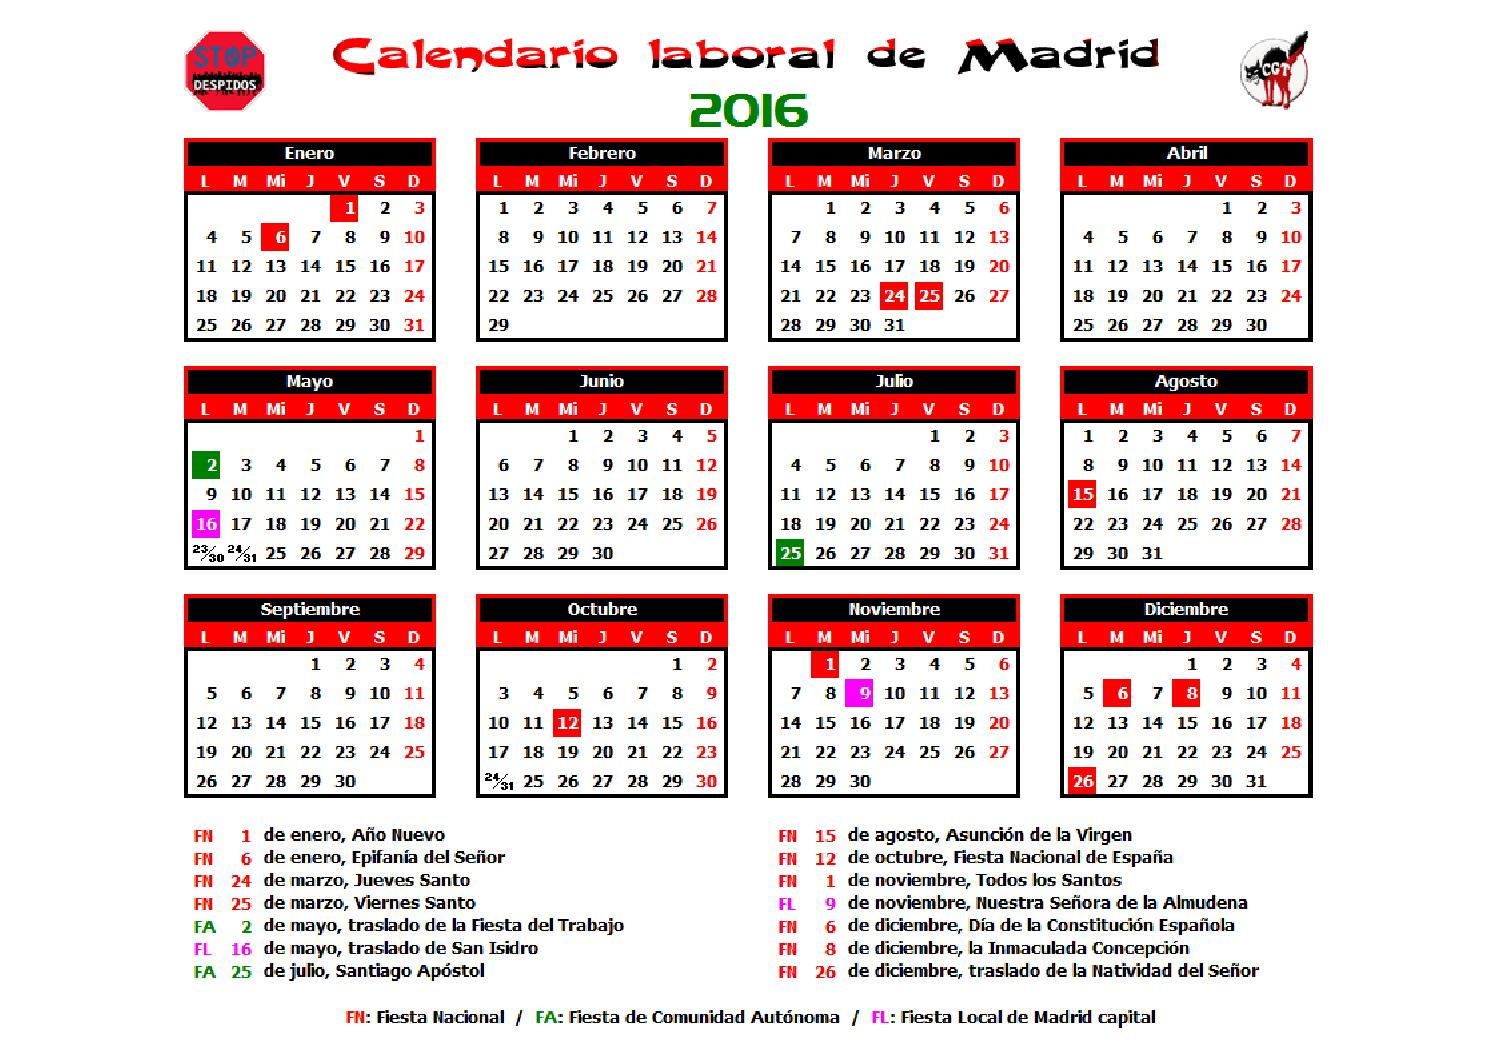 Calendario Laboral 2016 Madrid by CGT Atos - issuu